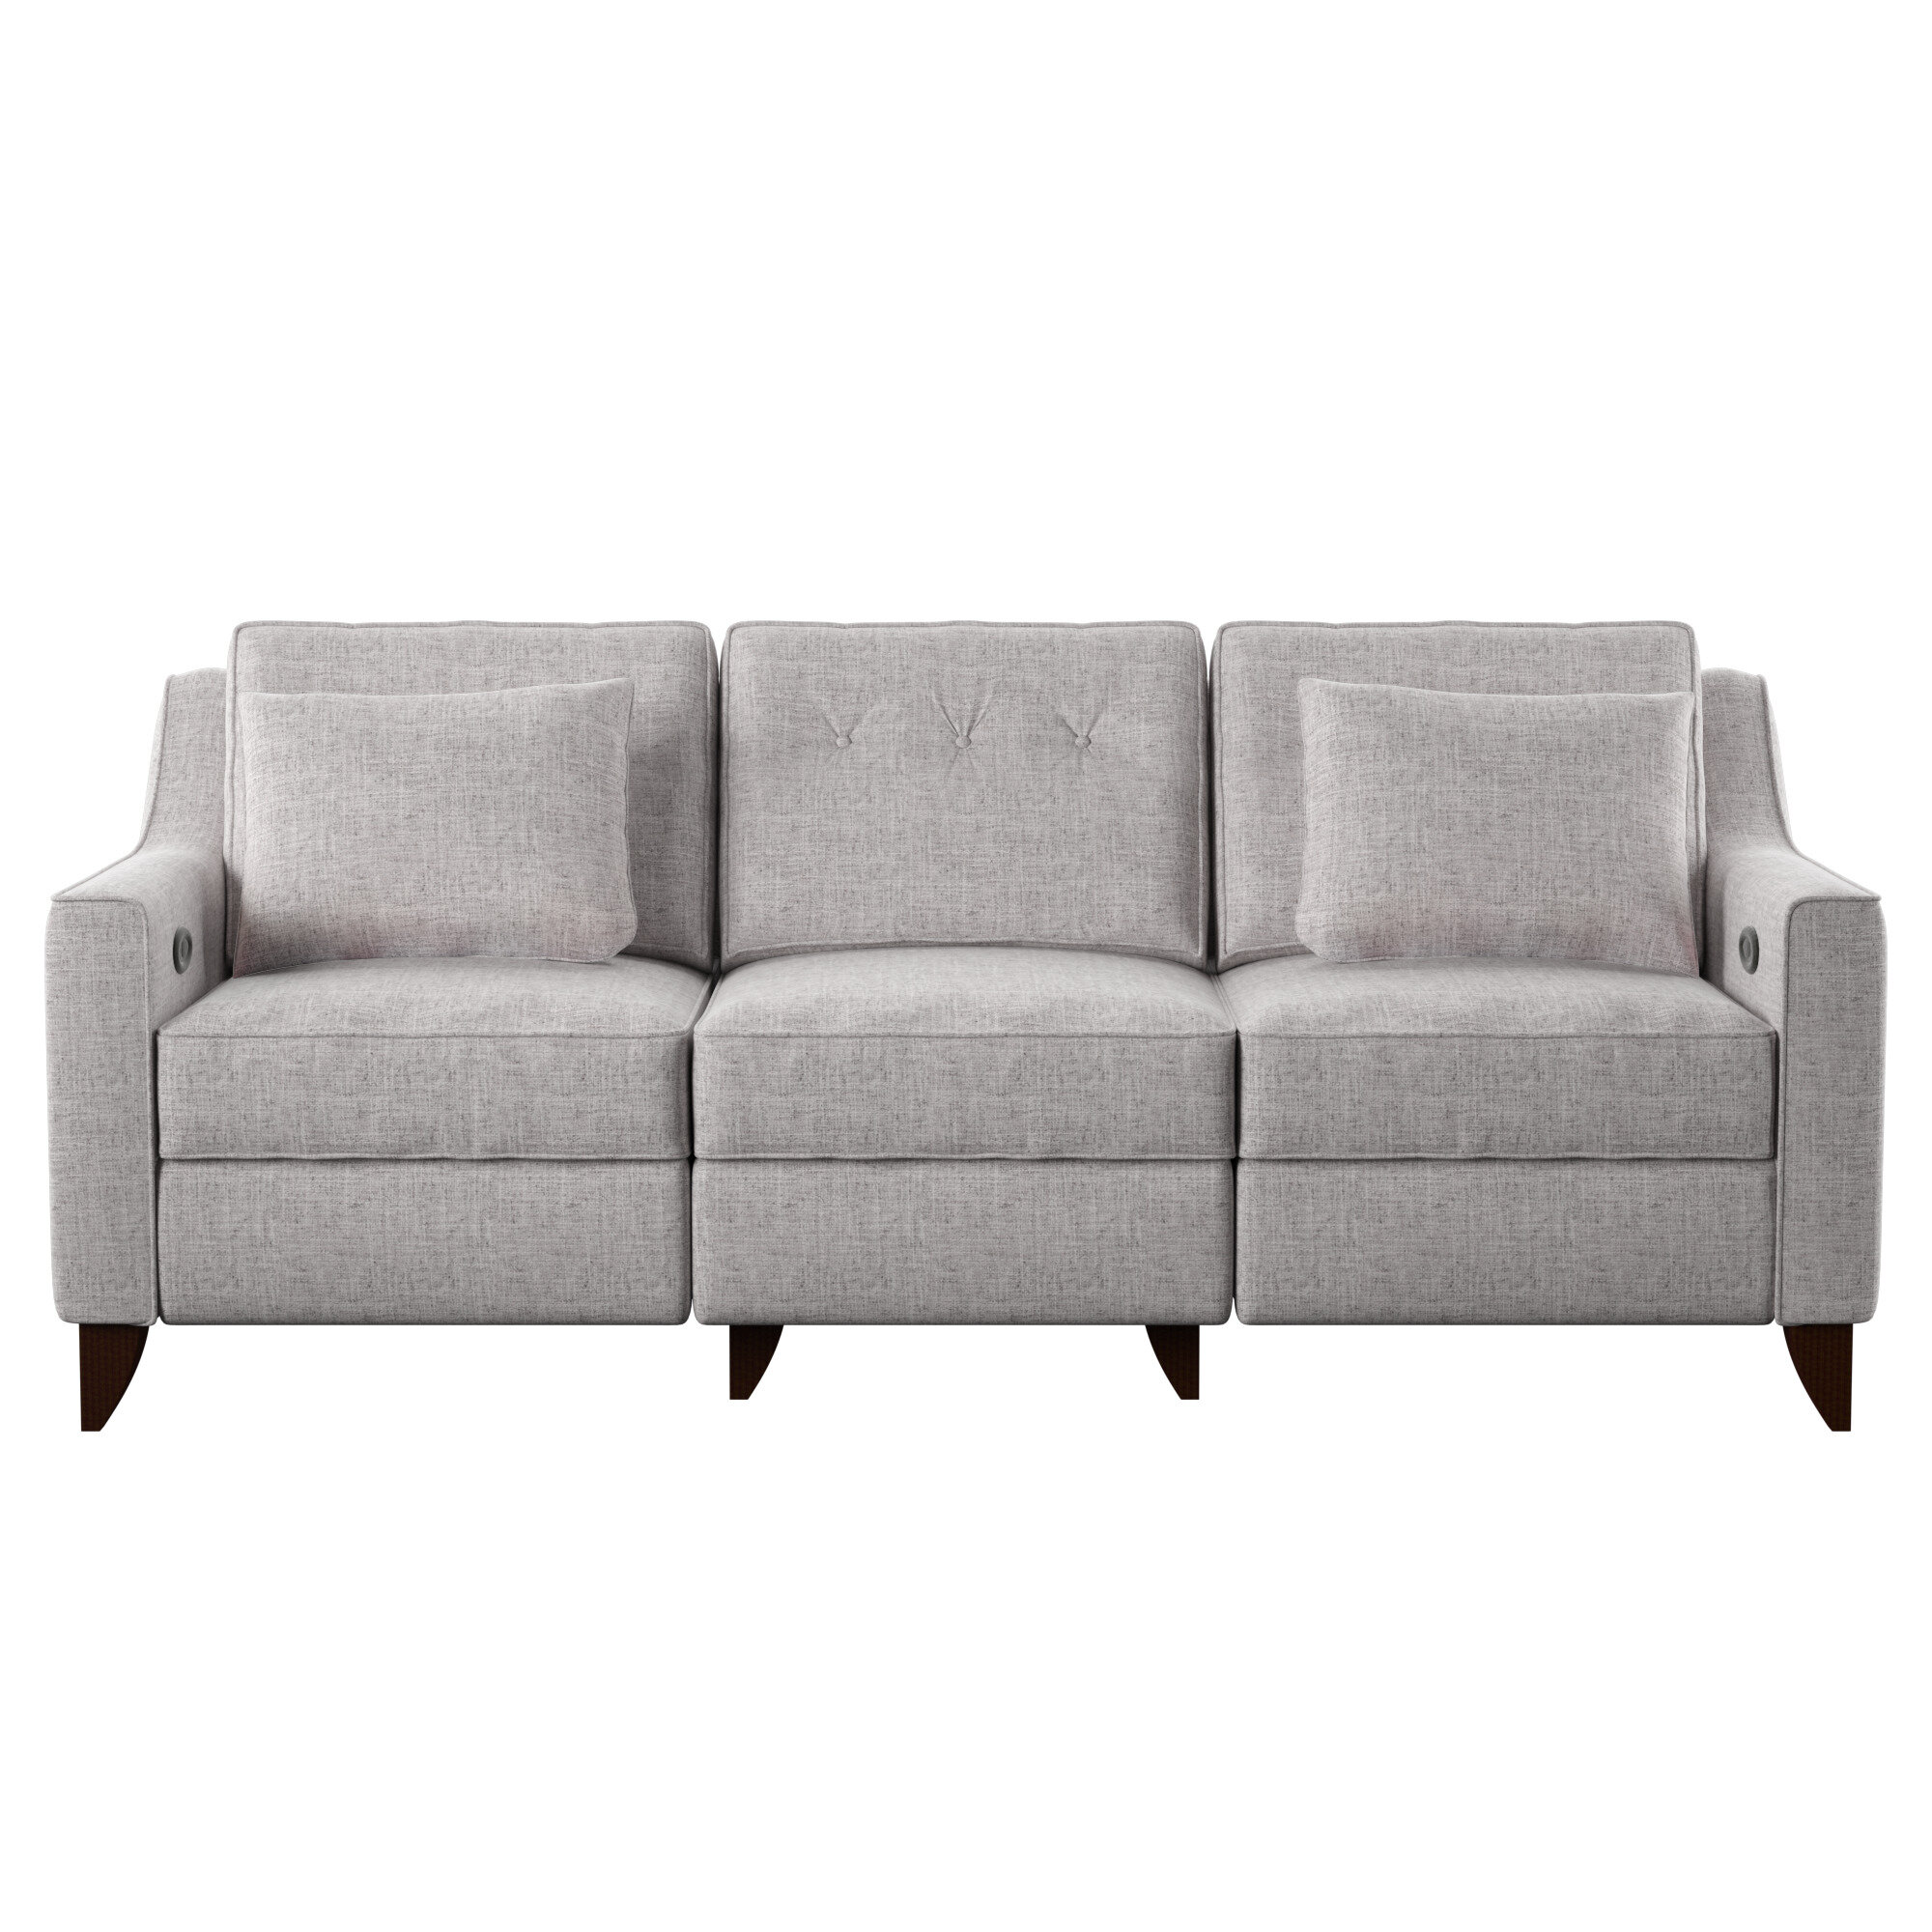 Wayfair Custom Upholstery™ Logan Reclining Sofa U0026 Reviews | Wayfair